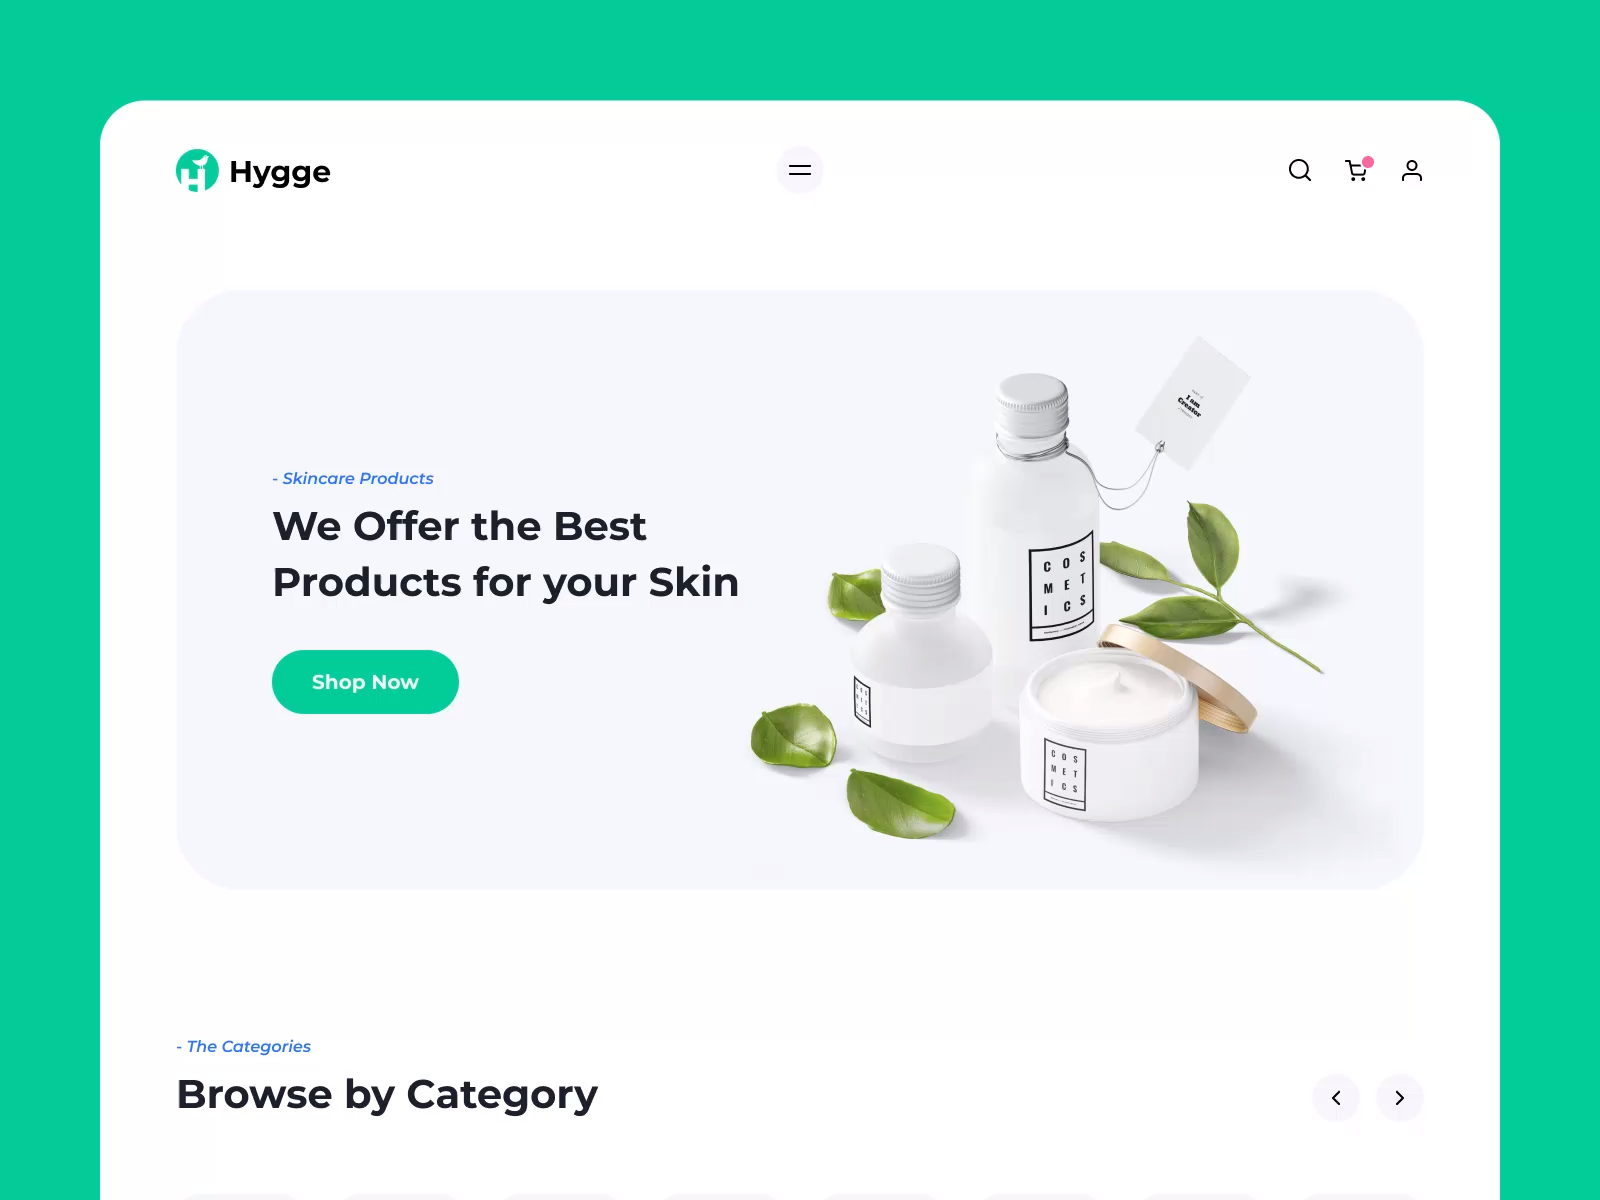 Hygge eCommerce brings you 16 beautiful, production-ready templates designed to jumpstart your eCommerce related projects. All templates were built with a clean and simple technology stack to allow for easy customization and scalability.